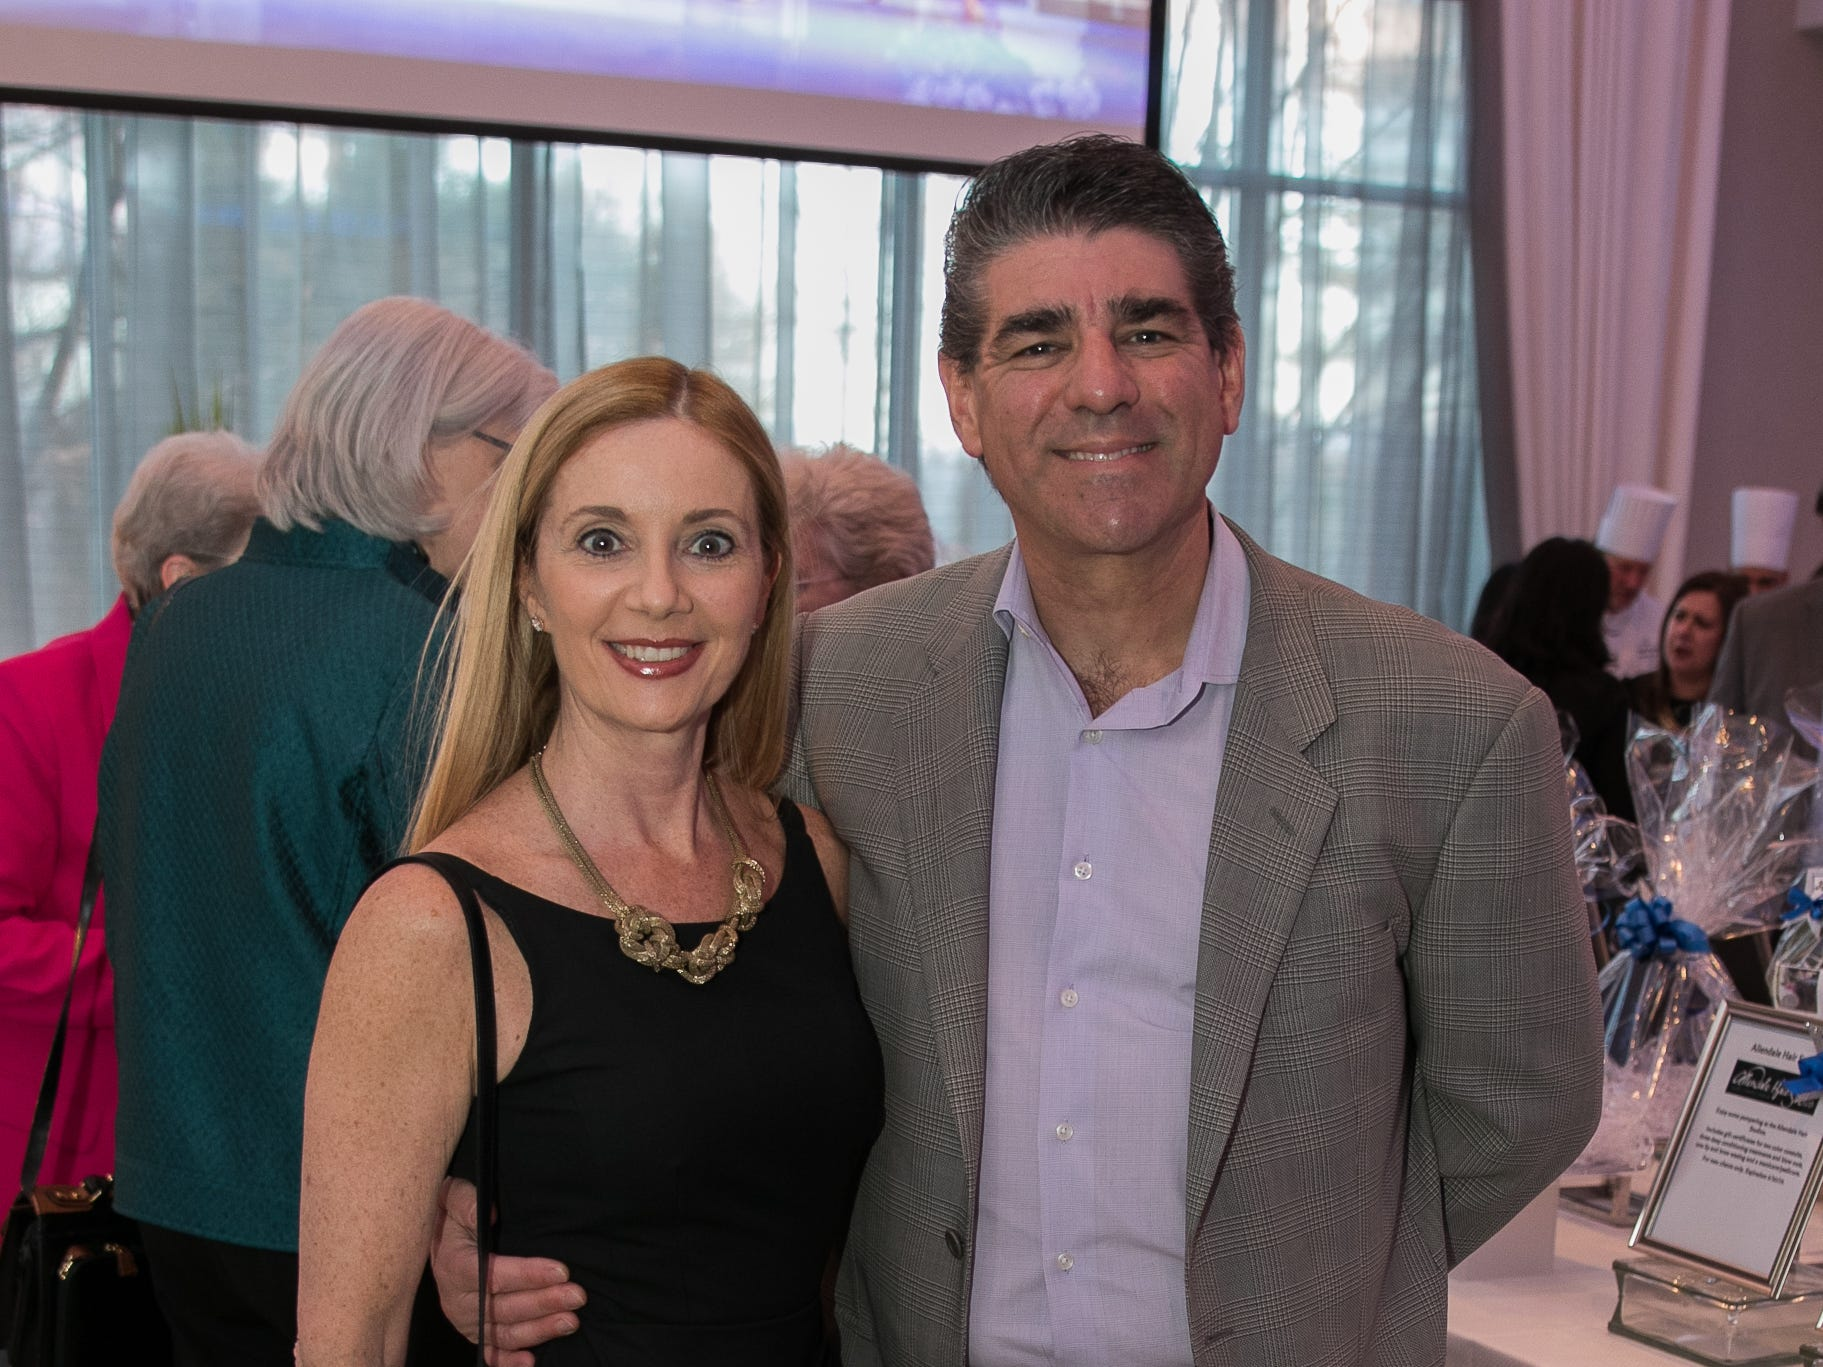 Dr. Melanie Sinatra, Dr. Warren Boardman. Academy of The Holy Angels held their 22nd annual Angelic Evening at Edgewood Country Club in RiverVale. 03/22/2019